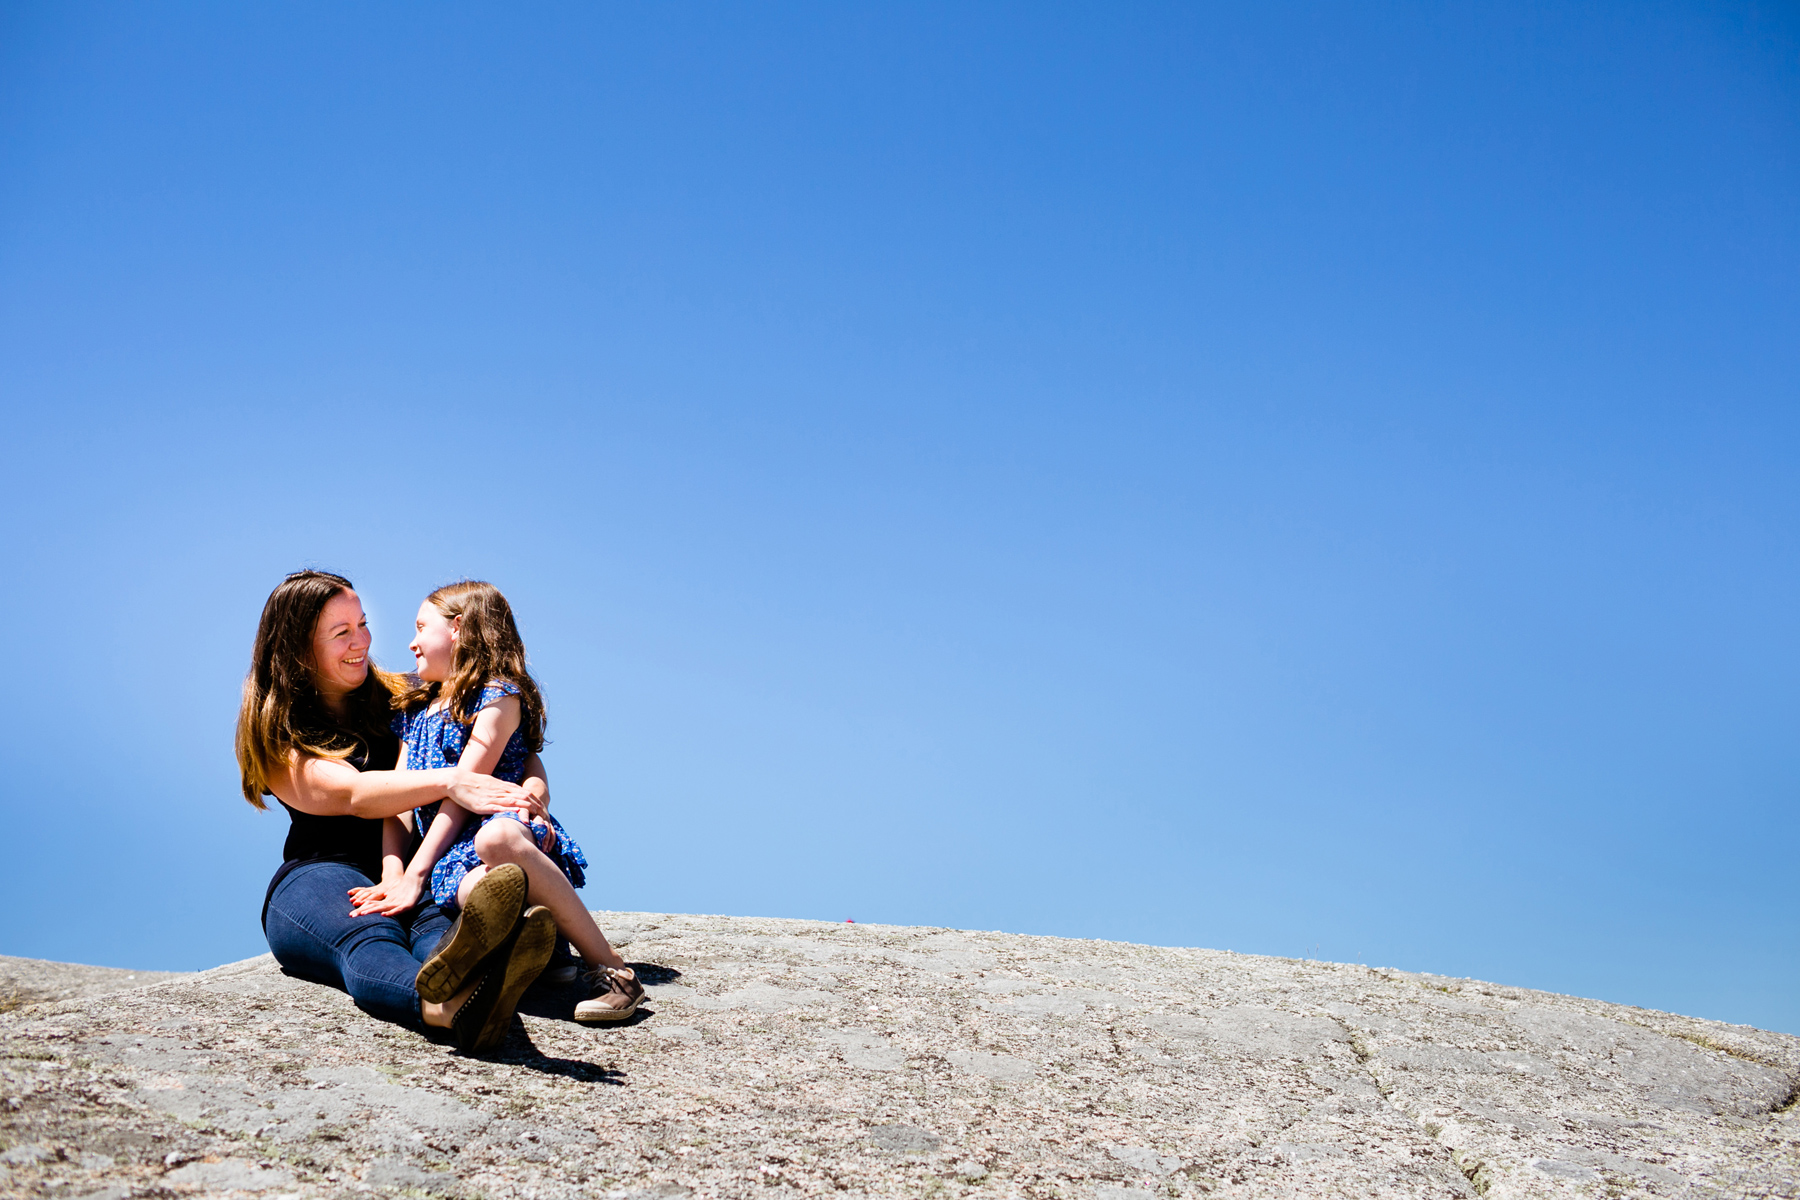 002-peggys-cove-mother-daughter-portraits-kandisebrown